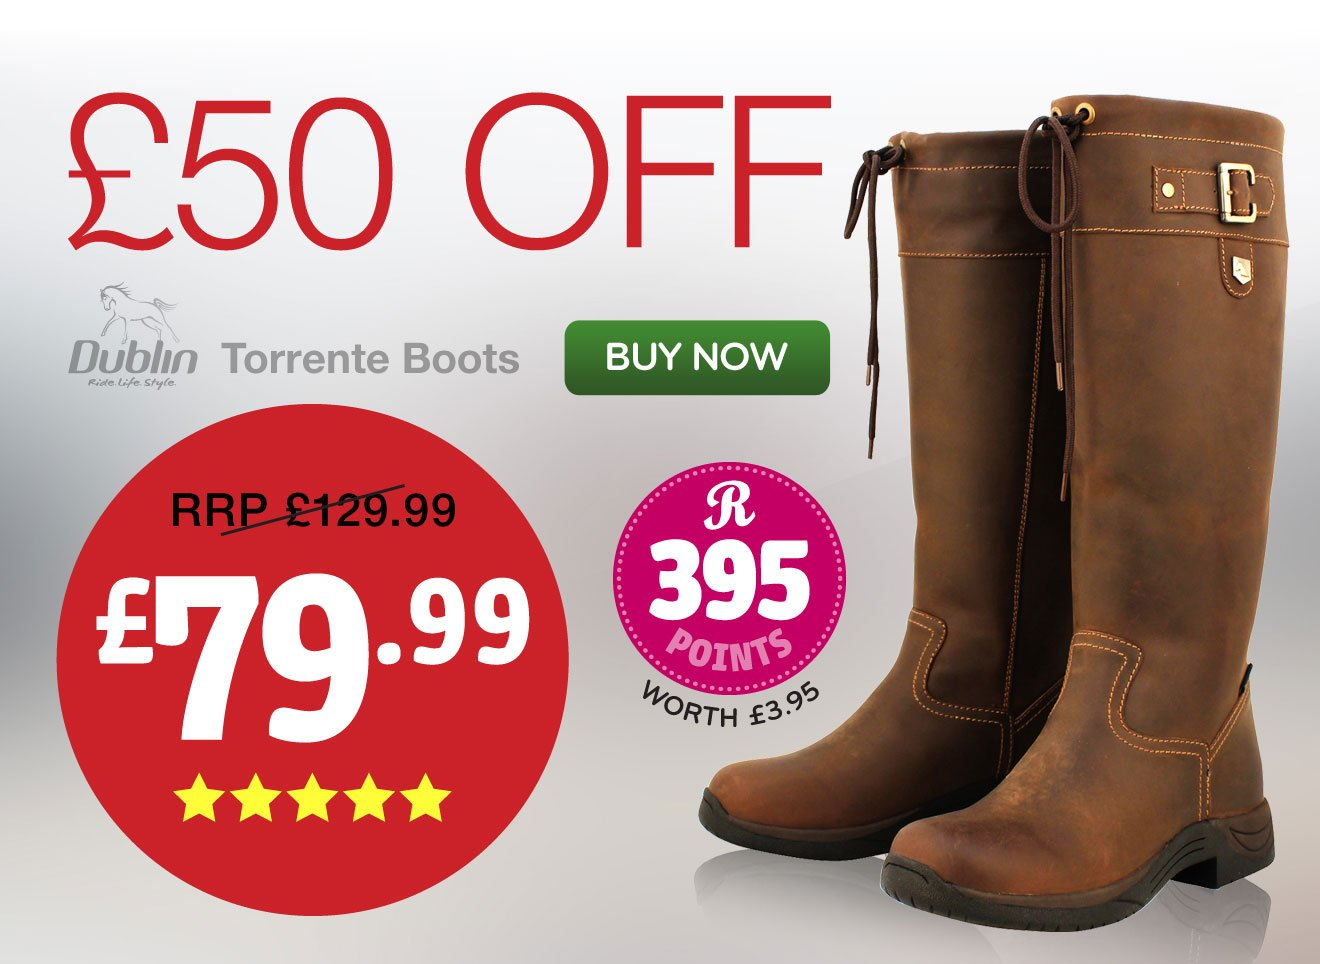 £50 OFF! Dublin Torrente Boots RRP £129.99 NOW £79.99 | Earn 395 Rider Reward points - BUY NOW >